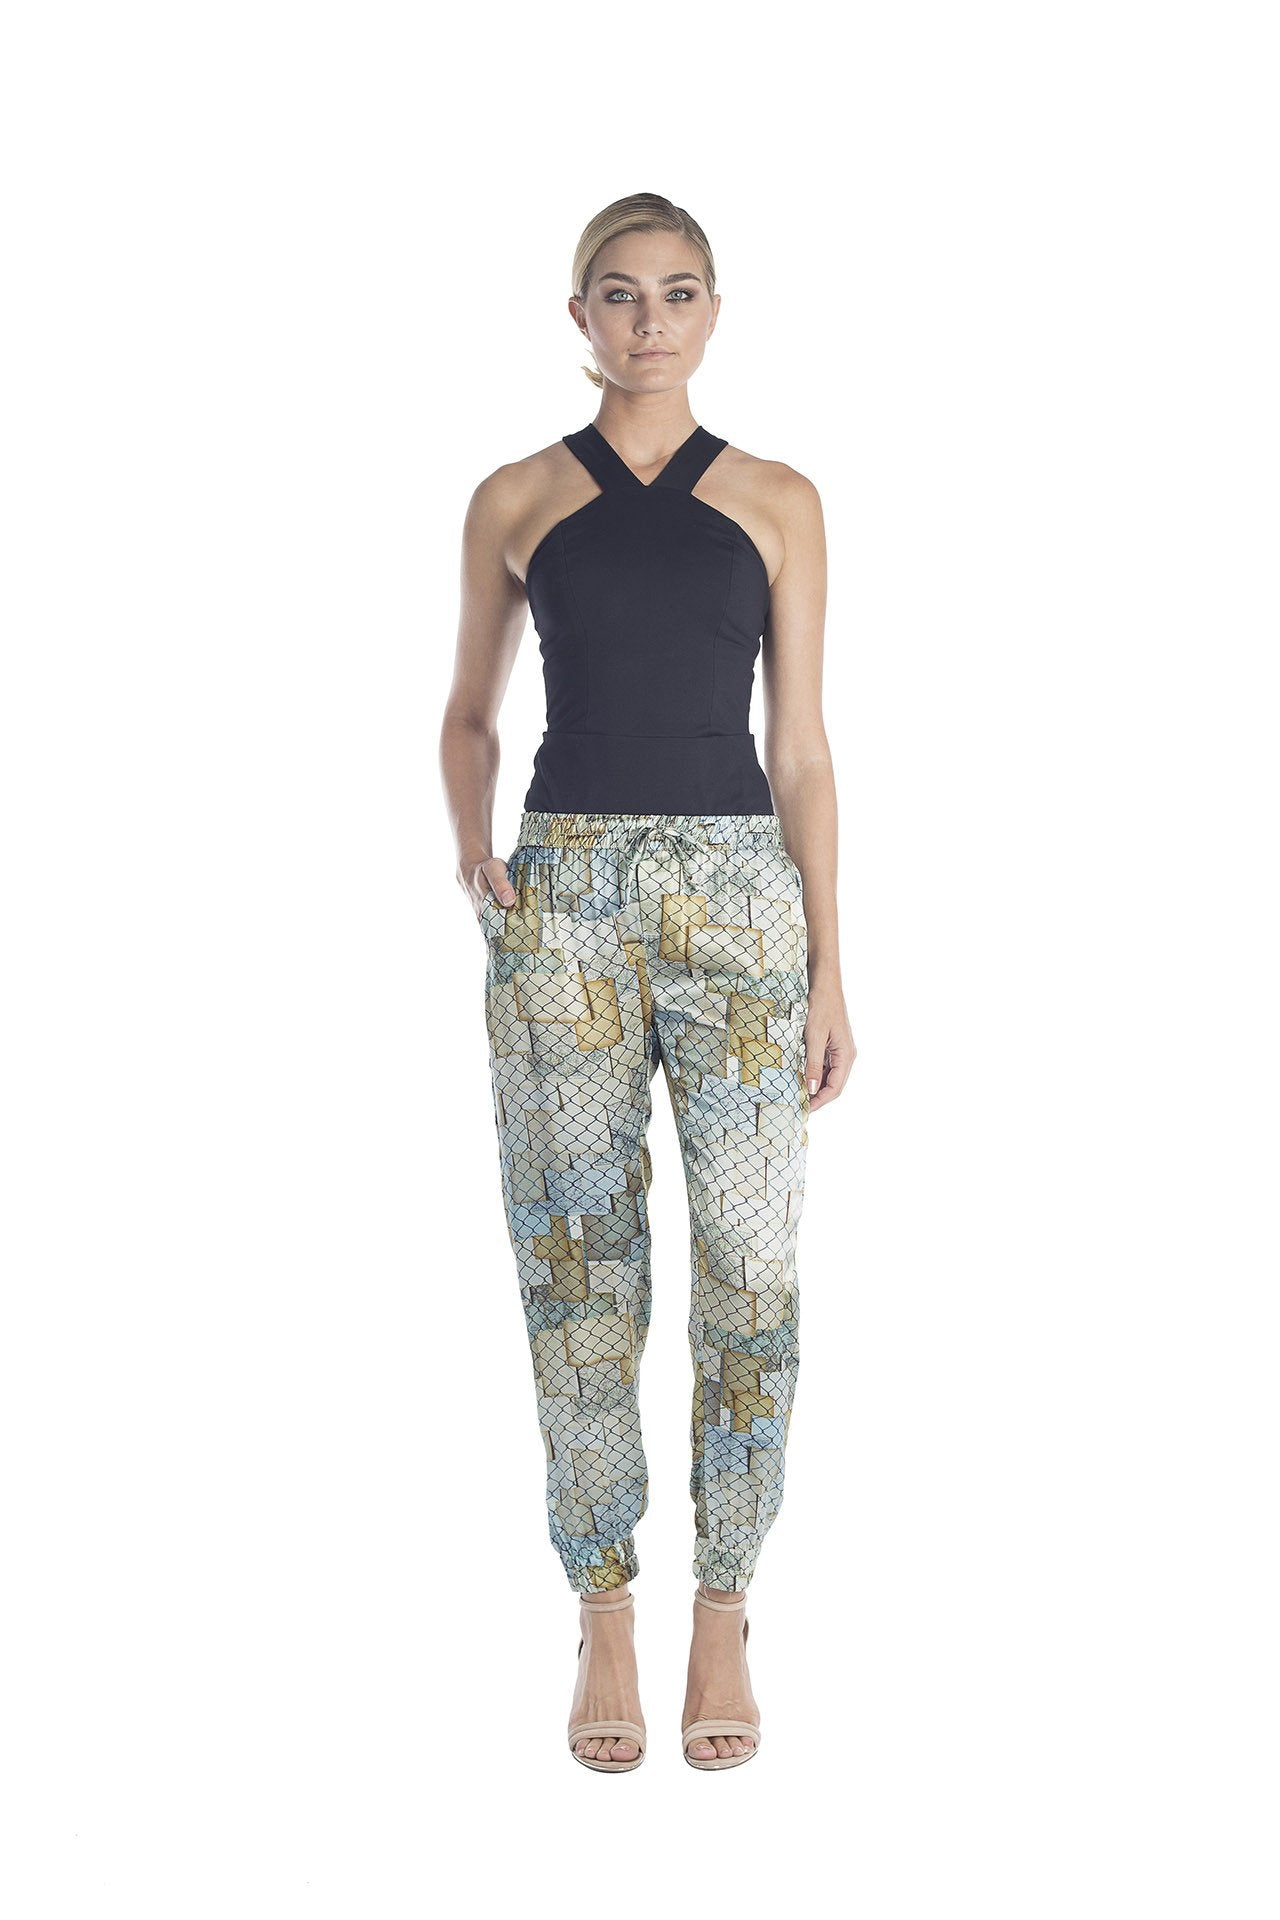 Front view of silk jogger pants with golden and silver hues designed by artist Mauro Giaconi